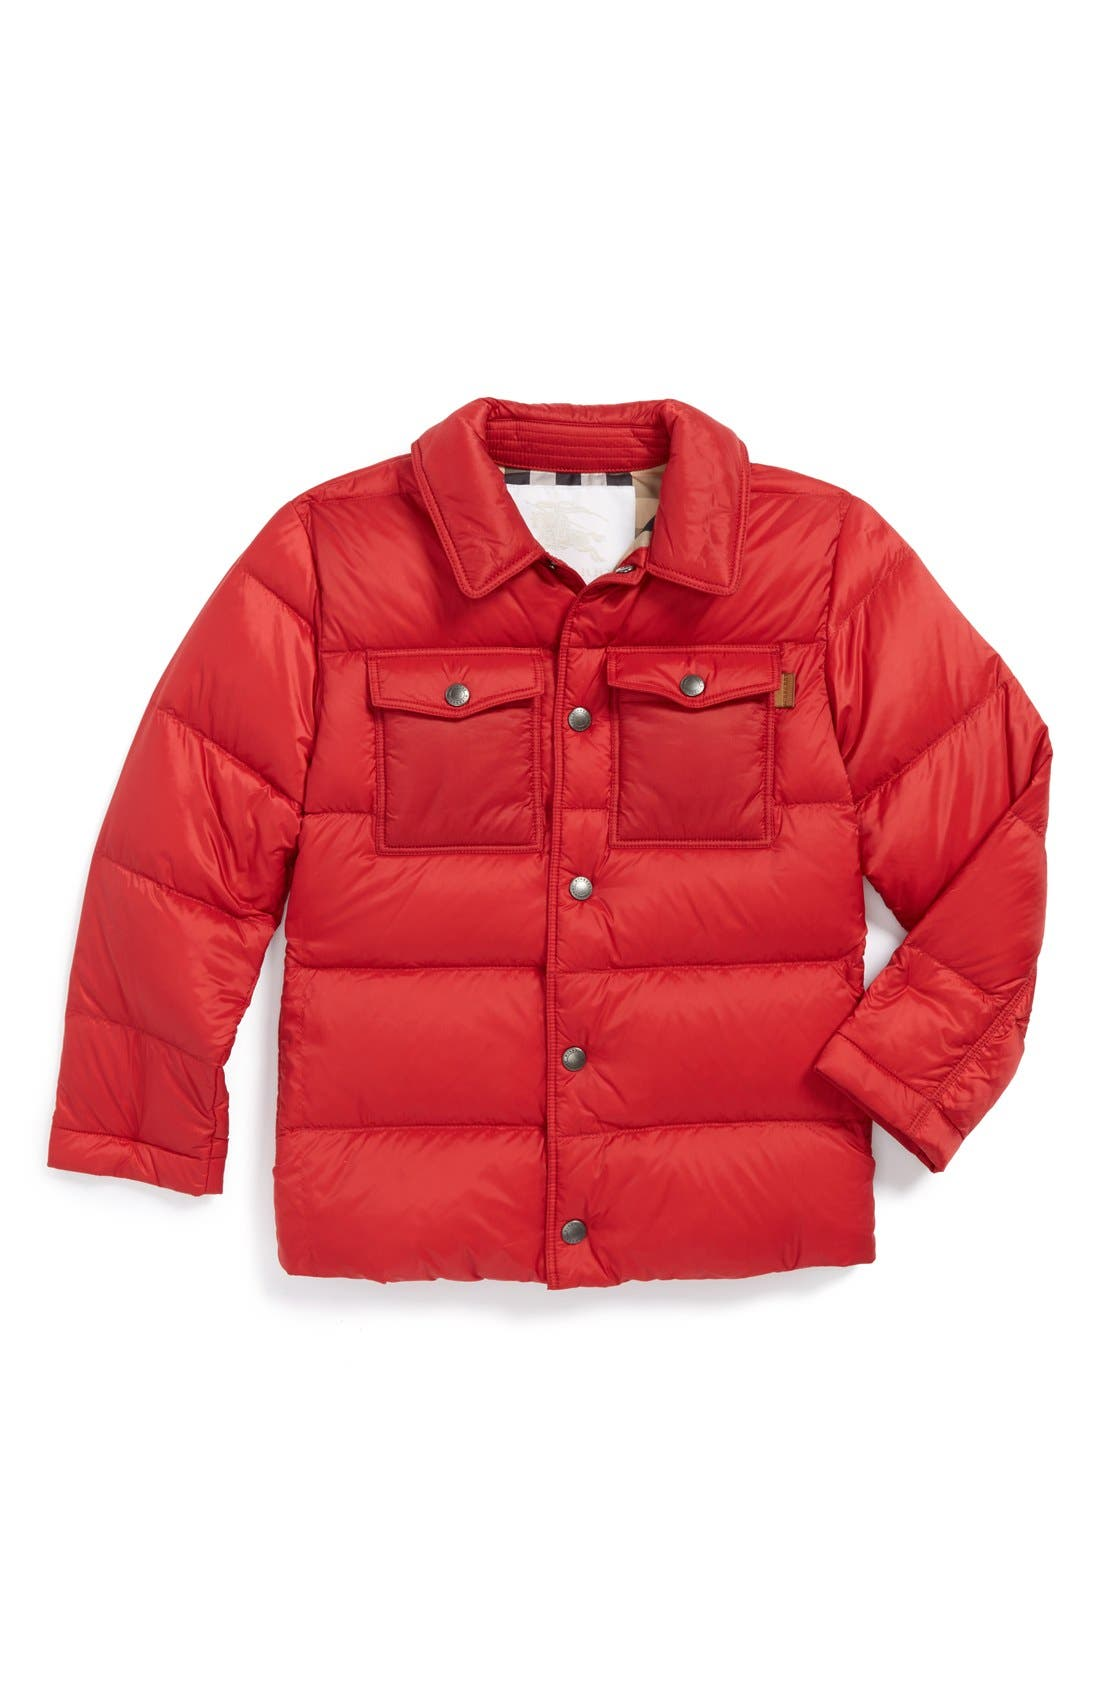 Alternate Image 1 Selected - Burberry 'Mini Justin' Quilted Down Puffer Jacket (Toddler Boys)